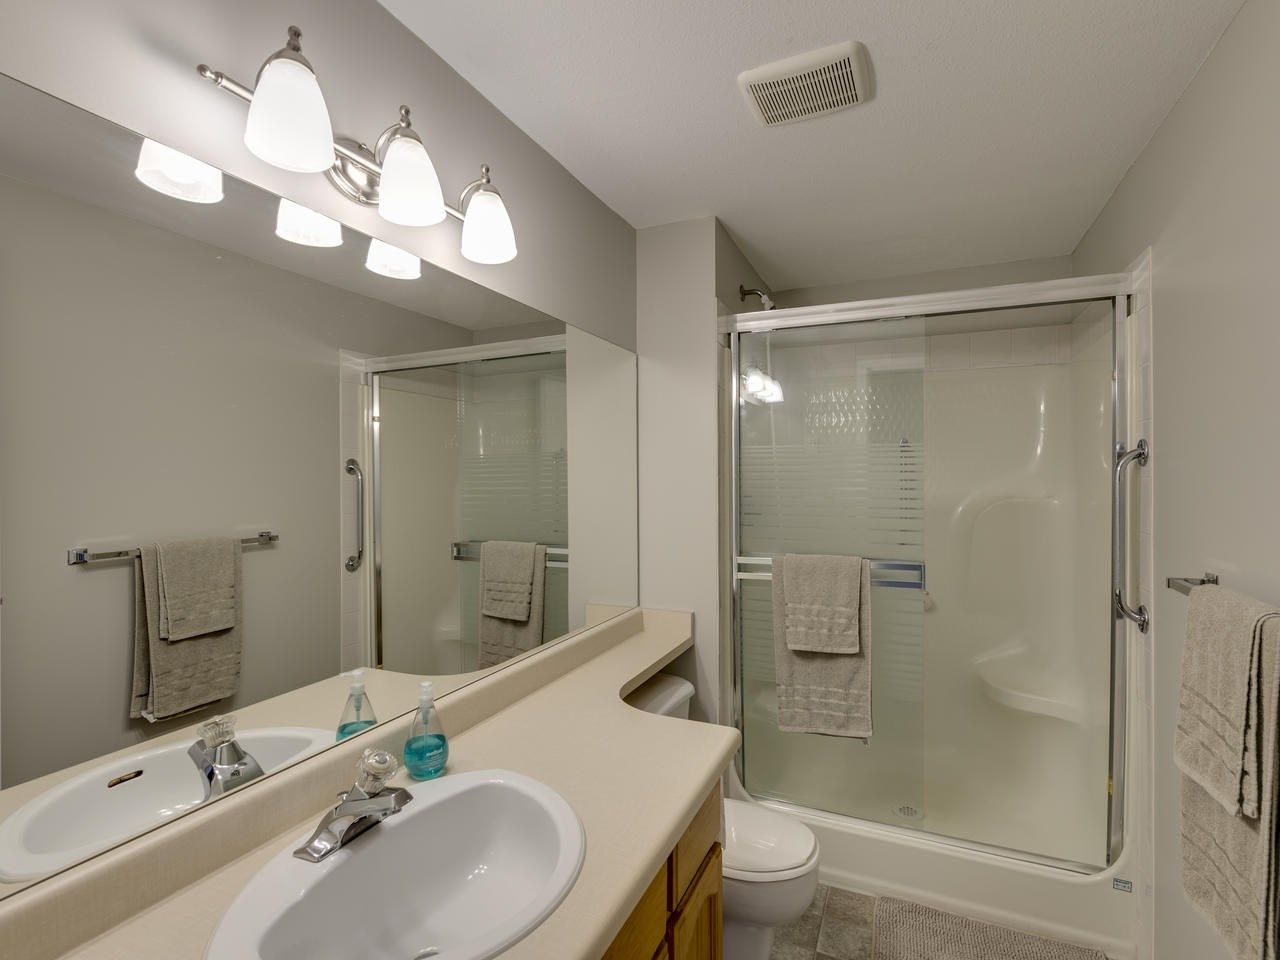 """Photo 31: Photos: 127 22555 116 Avenue in Maple Ridge: East Central Townhouse for sale in """"HILLSIDE"""" : MLS®# R2493046"""